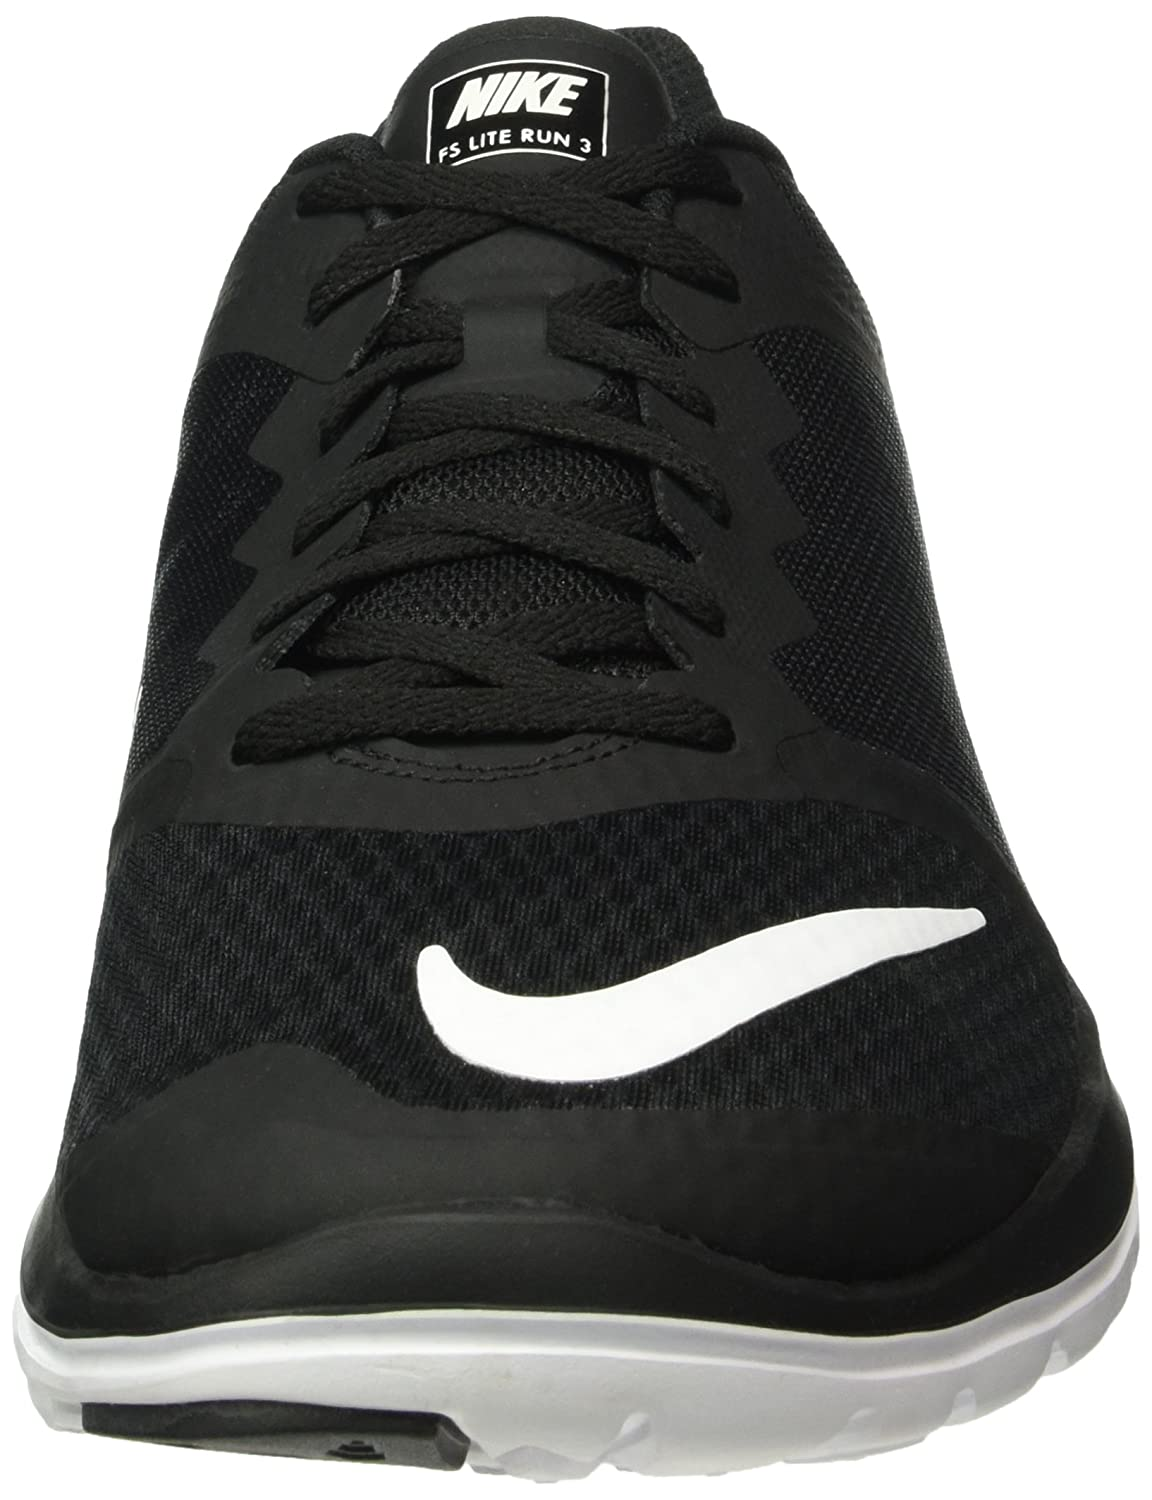 Nike FS LITE RUN 4 Running Shoes Buy WOLF GREY/BLACK